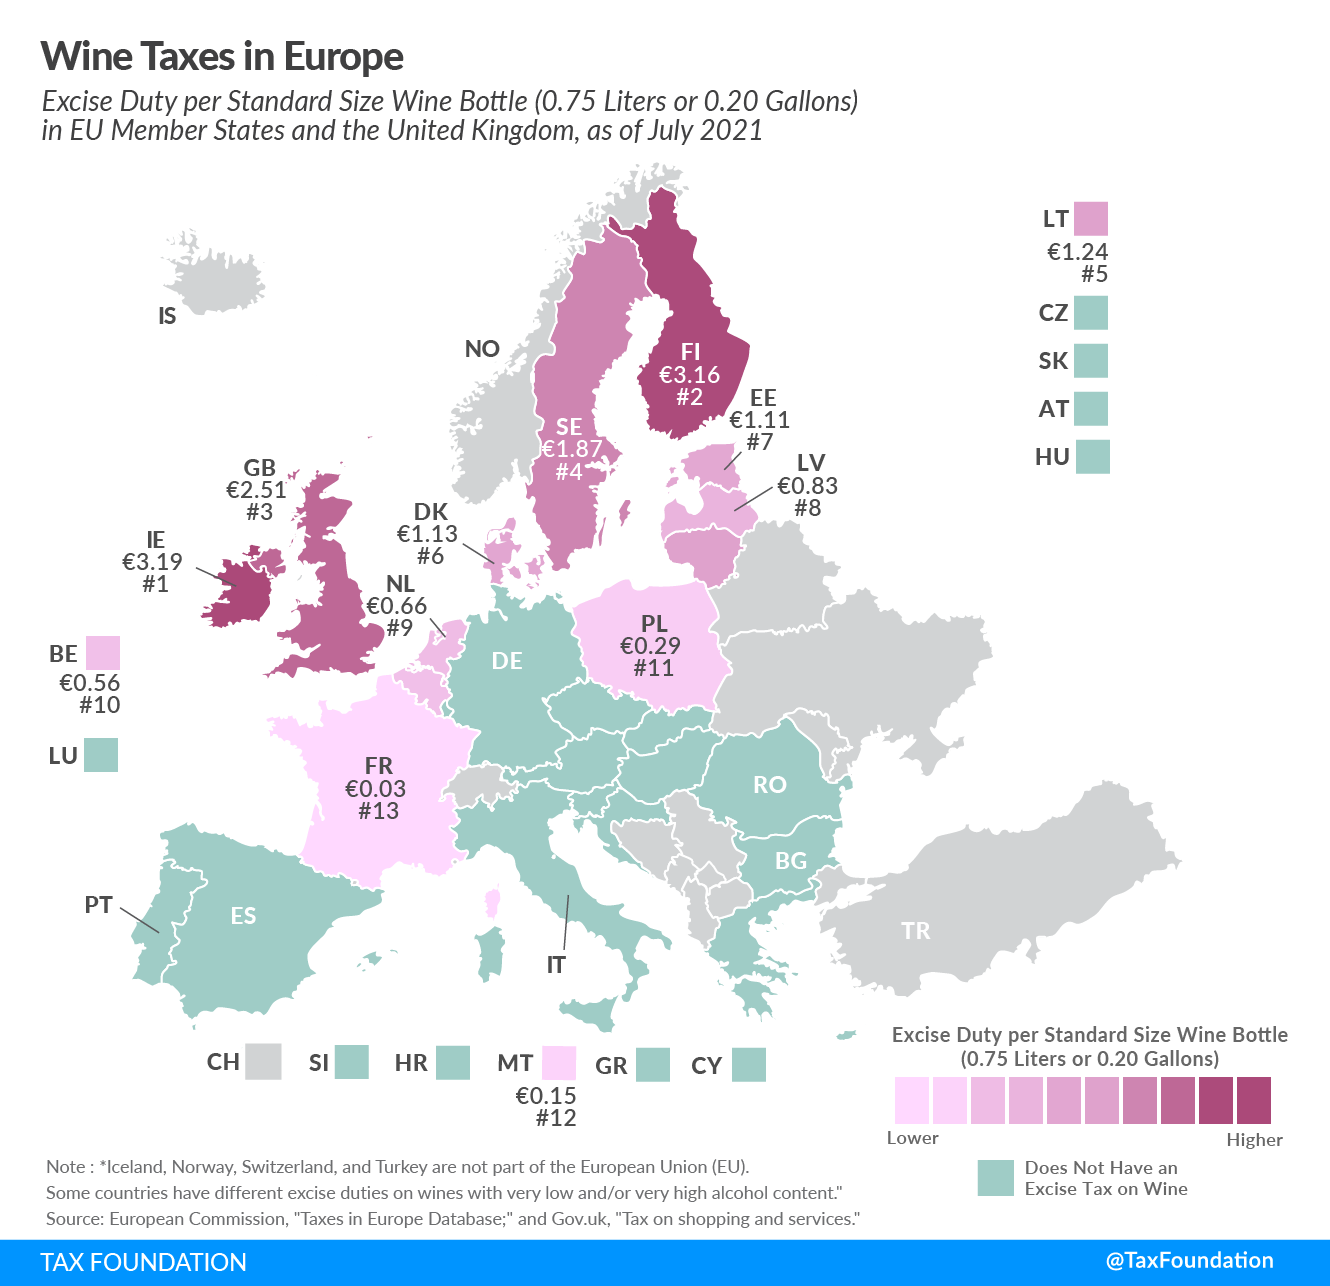 2021 wine taxes in Europe. Compare excise duty on wine, including germany wine tax, spain wine tax, and france wine tax